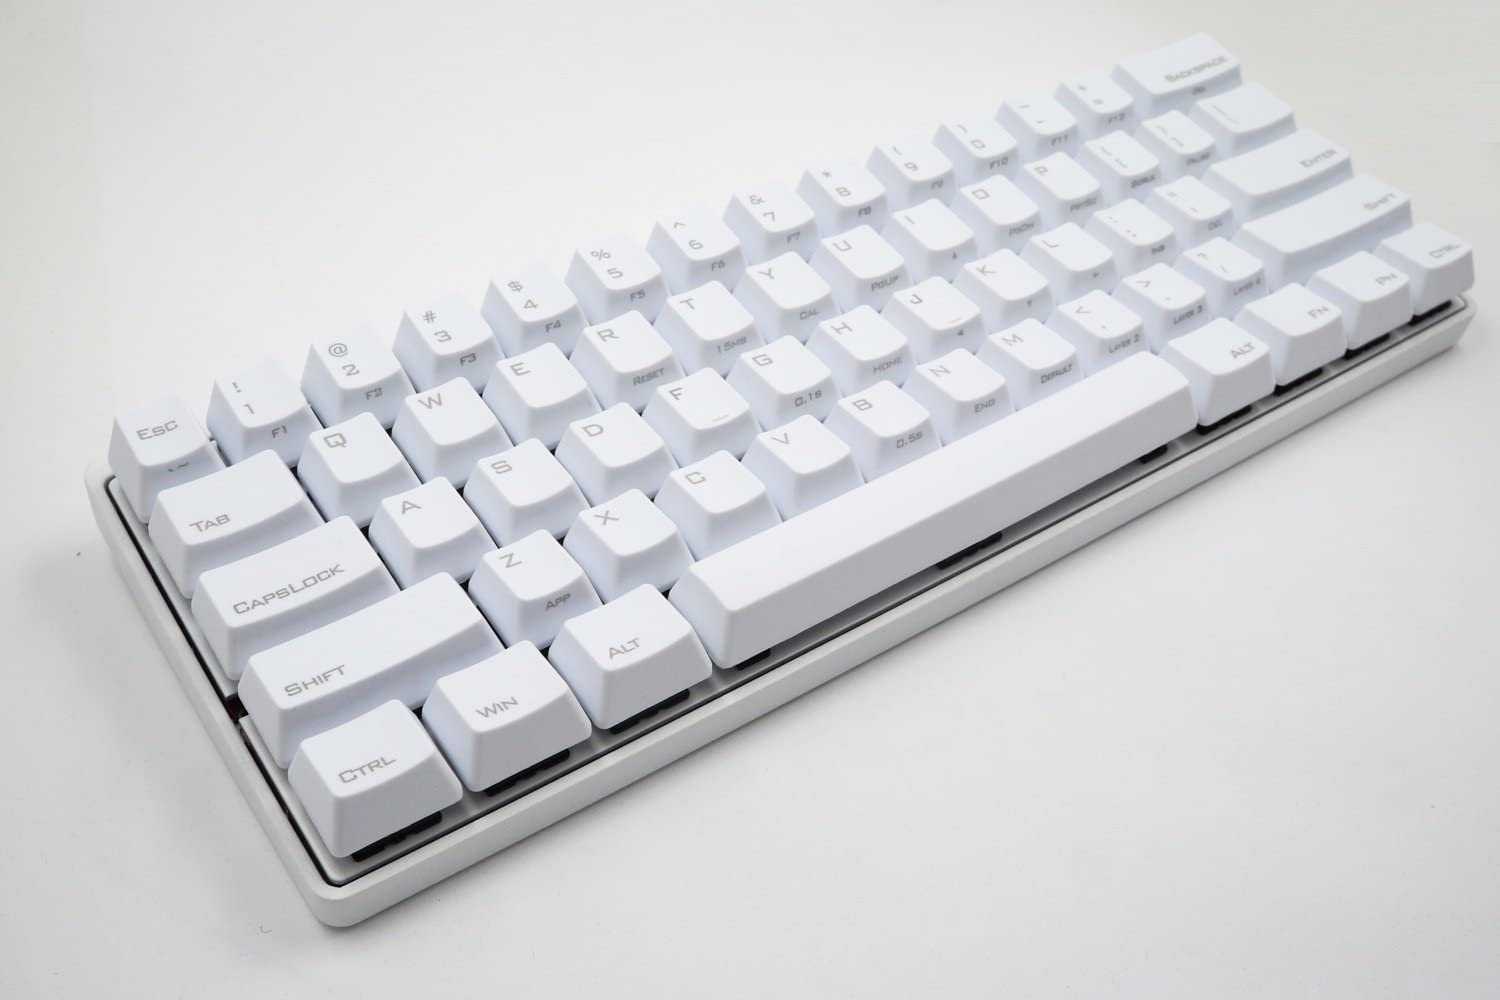 Vortexgear Pok3r 60% Ultra Compact Mechanical Gaming Keyboard - KBC Poker 3-61 Keys PBT Laser Etched Keycaps - PC/Mac/Linux - Programmable [Metal Casing] Clicky (Cherry Mx Blue, White)